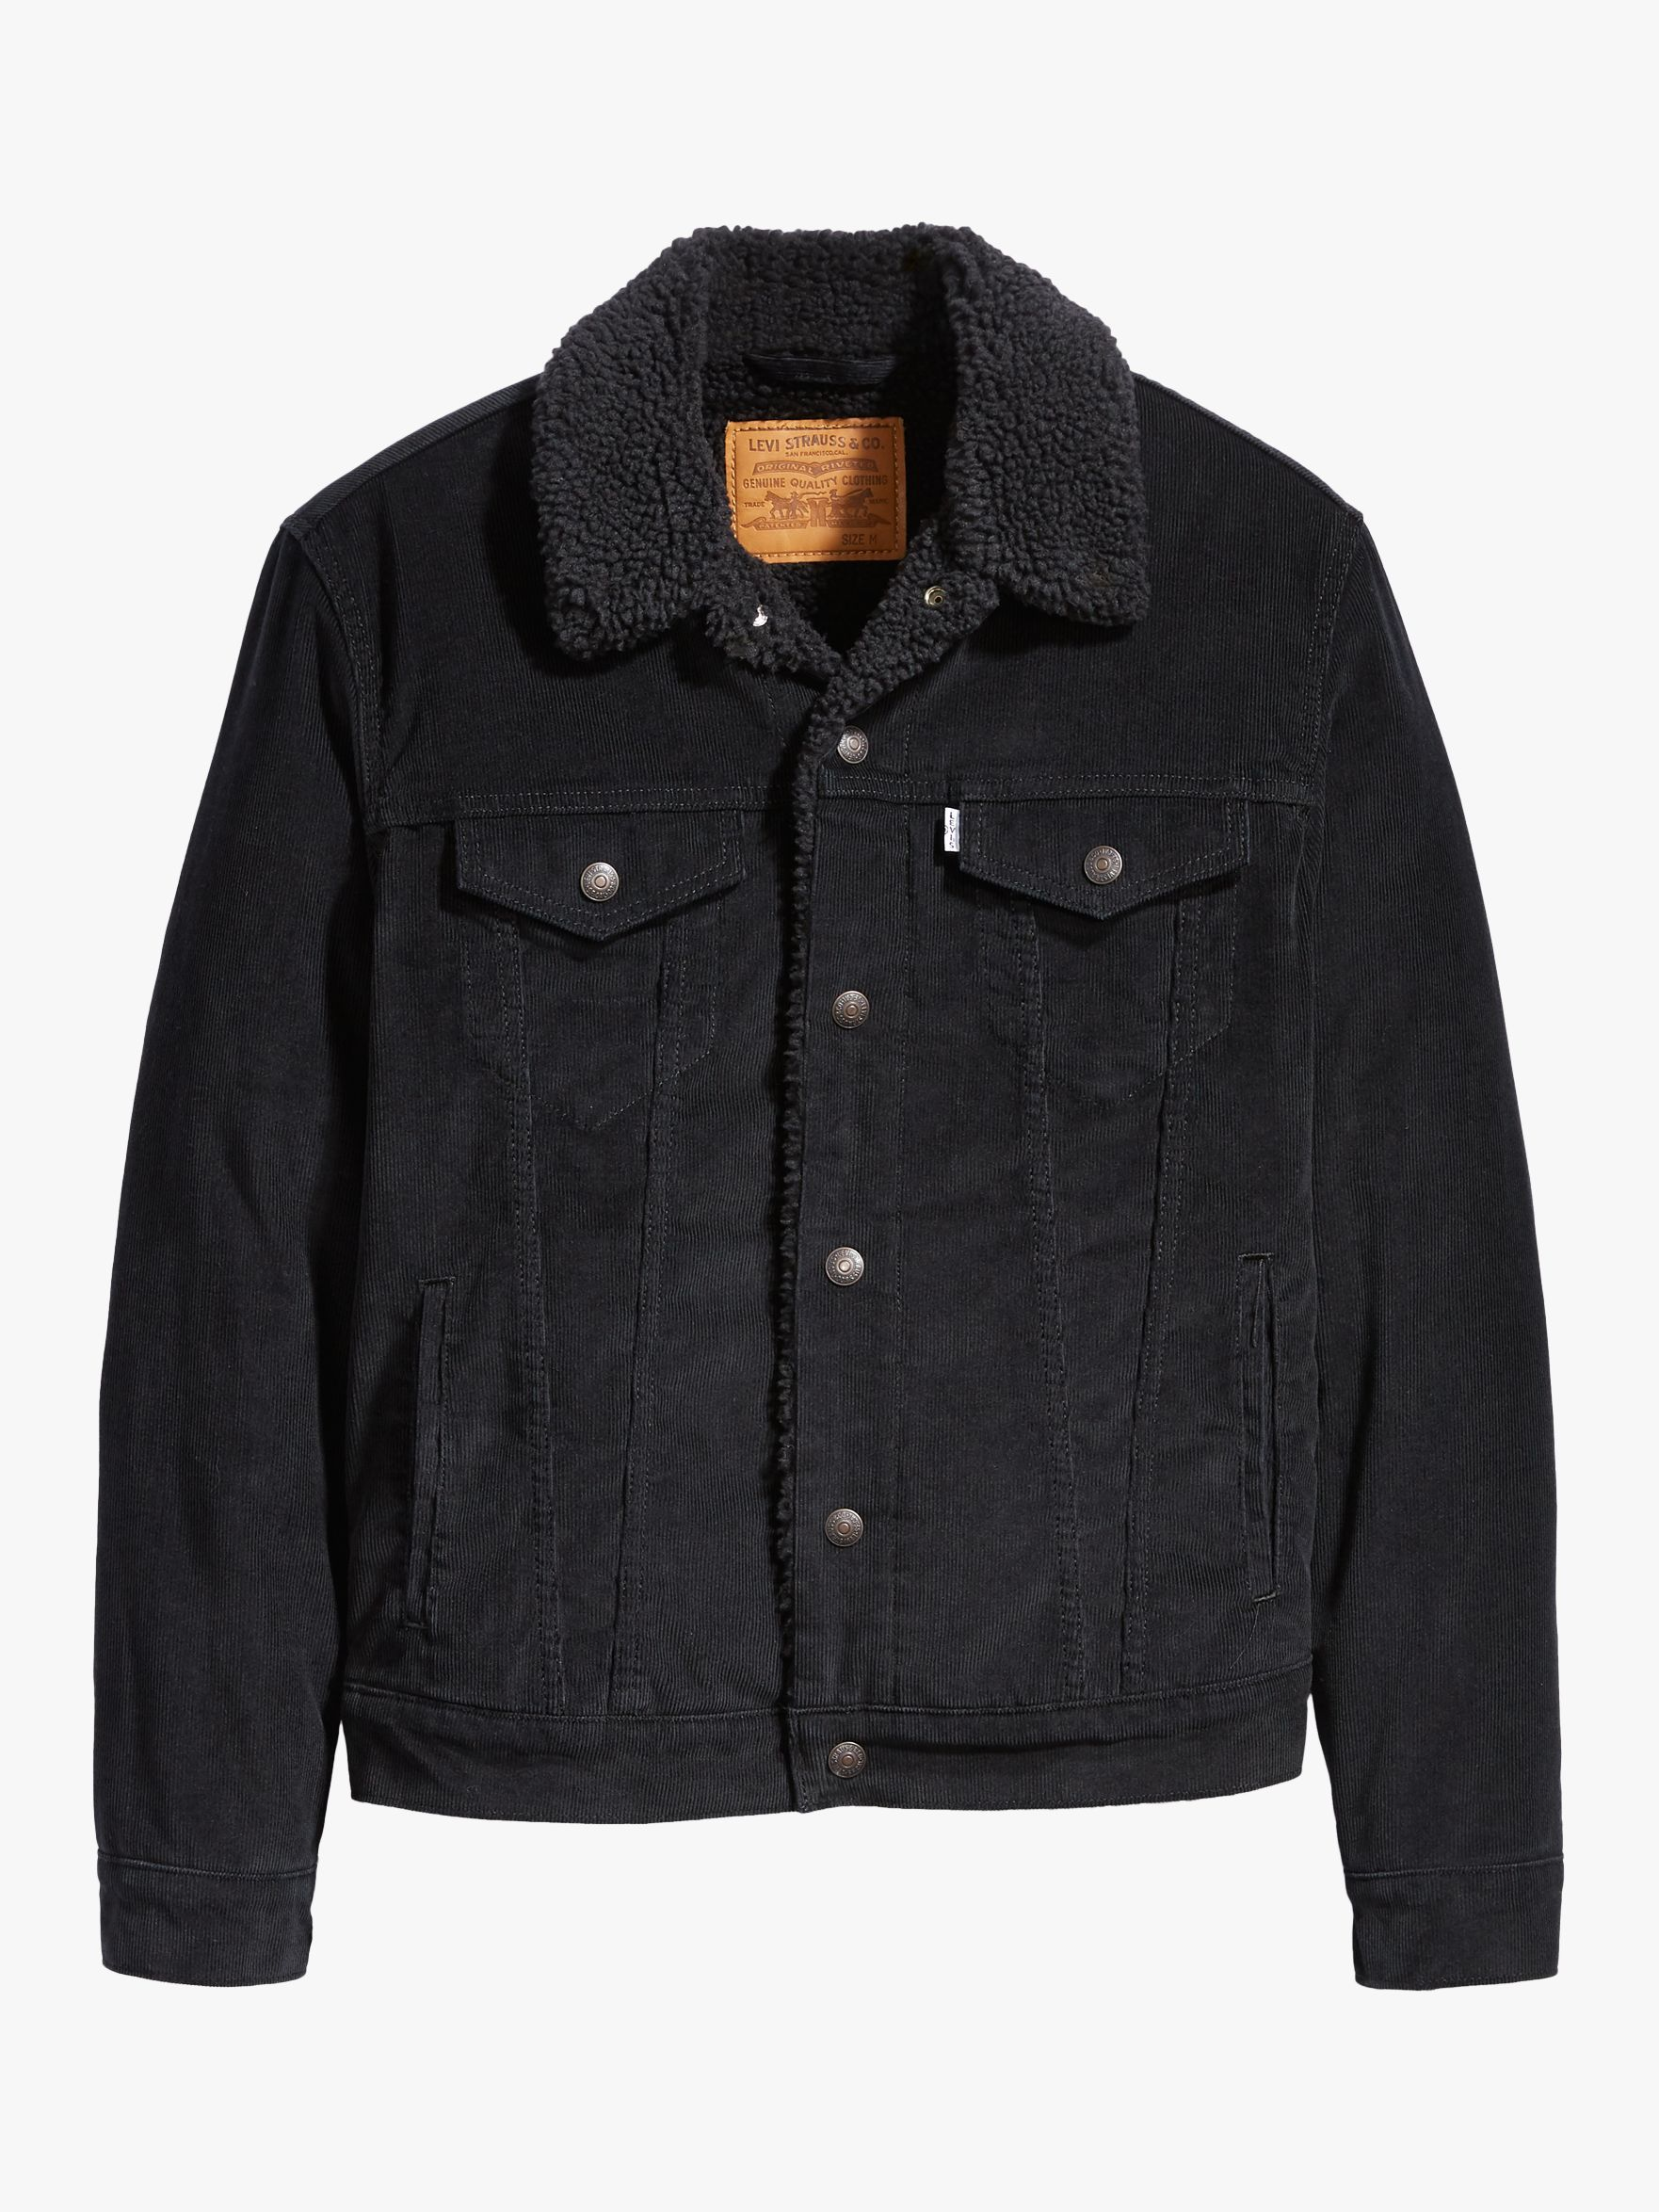 Levi's Type 3 Sherpa Trucker Jacket, Black Cord Better in